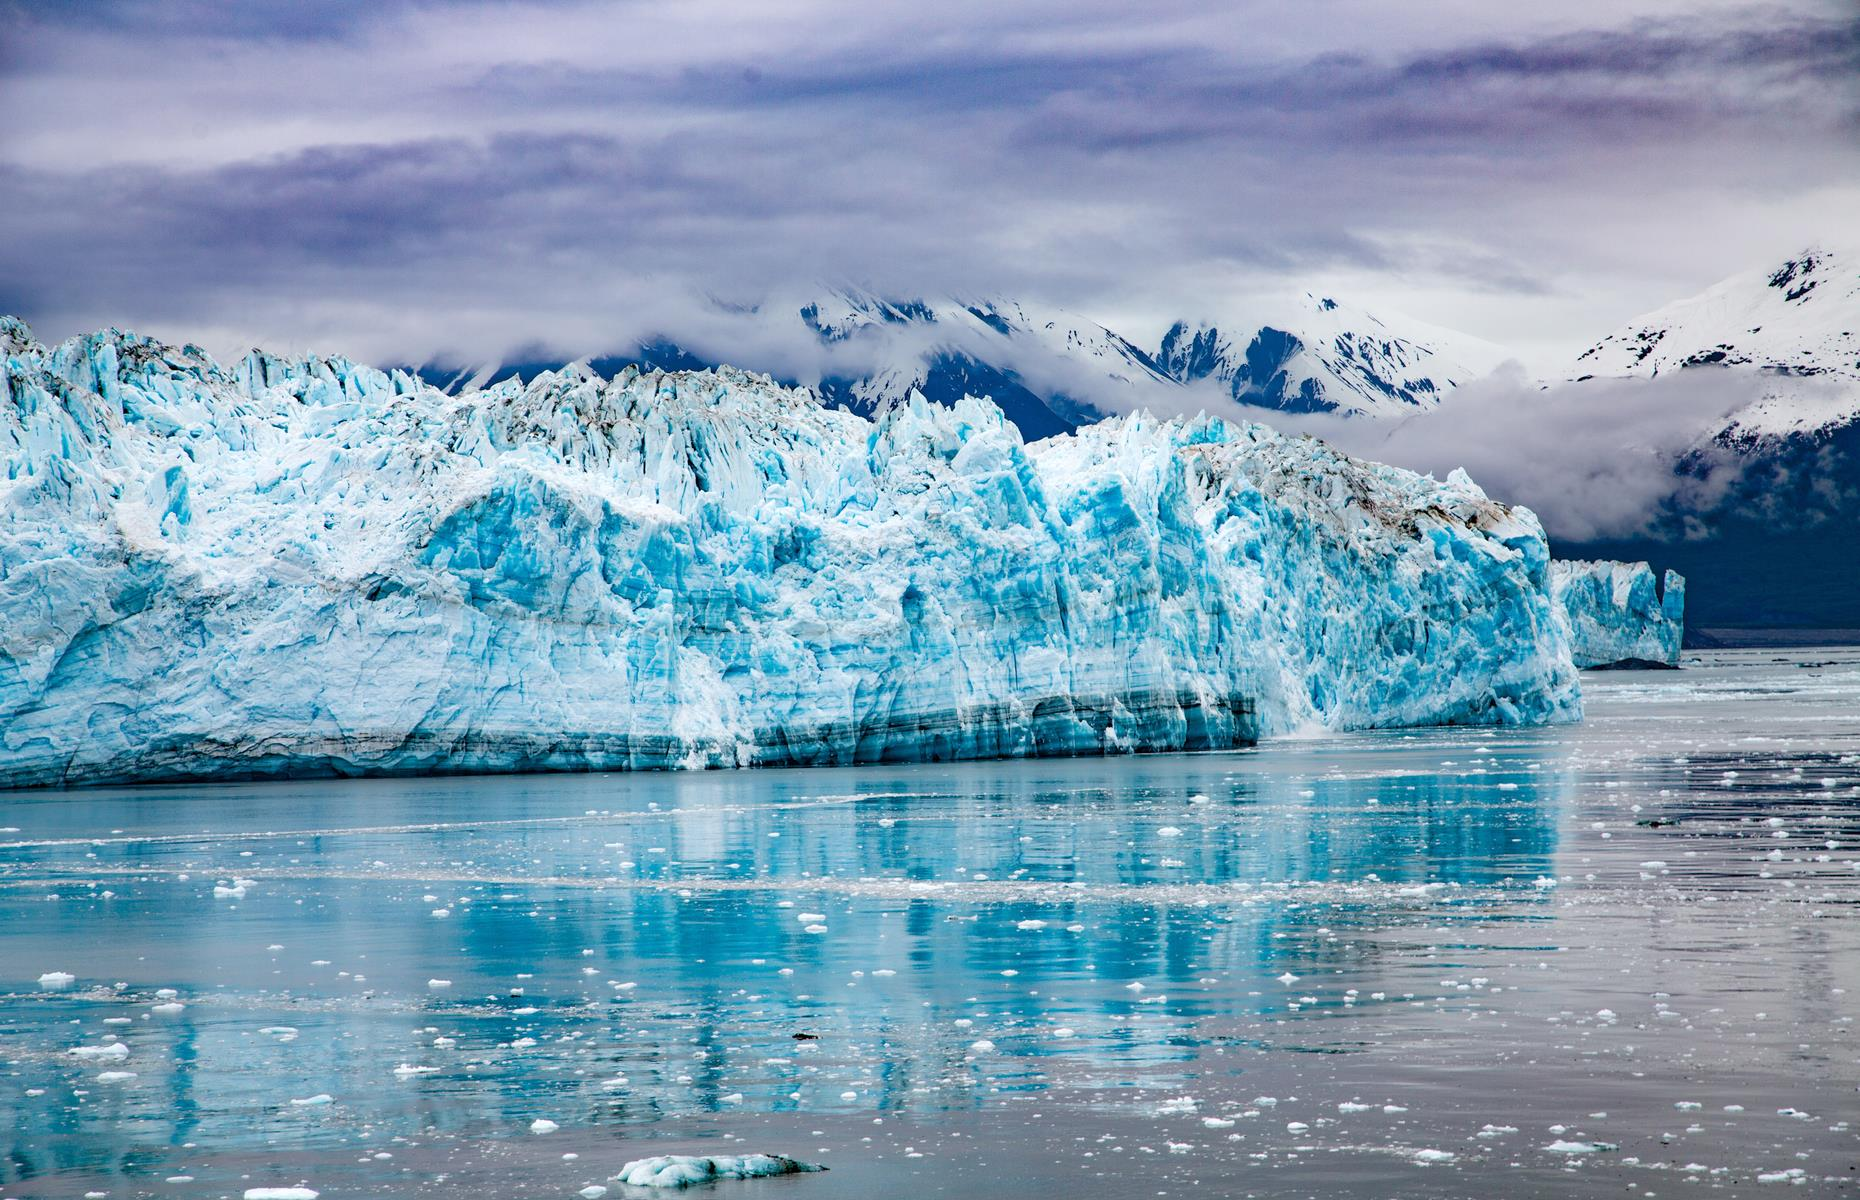 "Slide 48 of 61: The Hubbard Glacier is one of Alaska's most impressive. It's situated in the eastern part of the state, off the coast of Yakutat, and is a gargantuan six miles-plus wide and 400-feet (122m) tall at its highest point. The blue-hued beast is well-known for being ""active"", slowly advancing through the gulf, rather than retreating like many other of the world's glaciers."